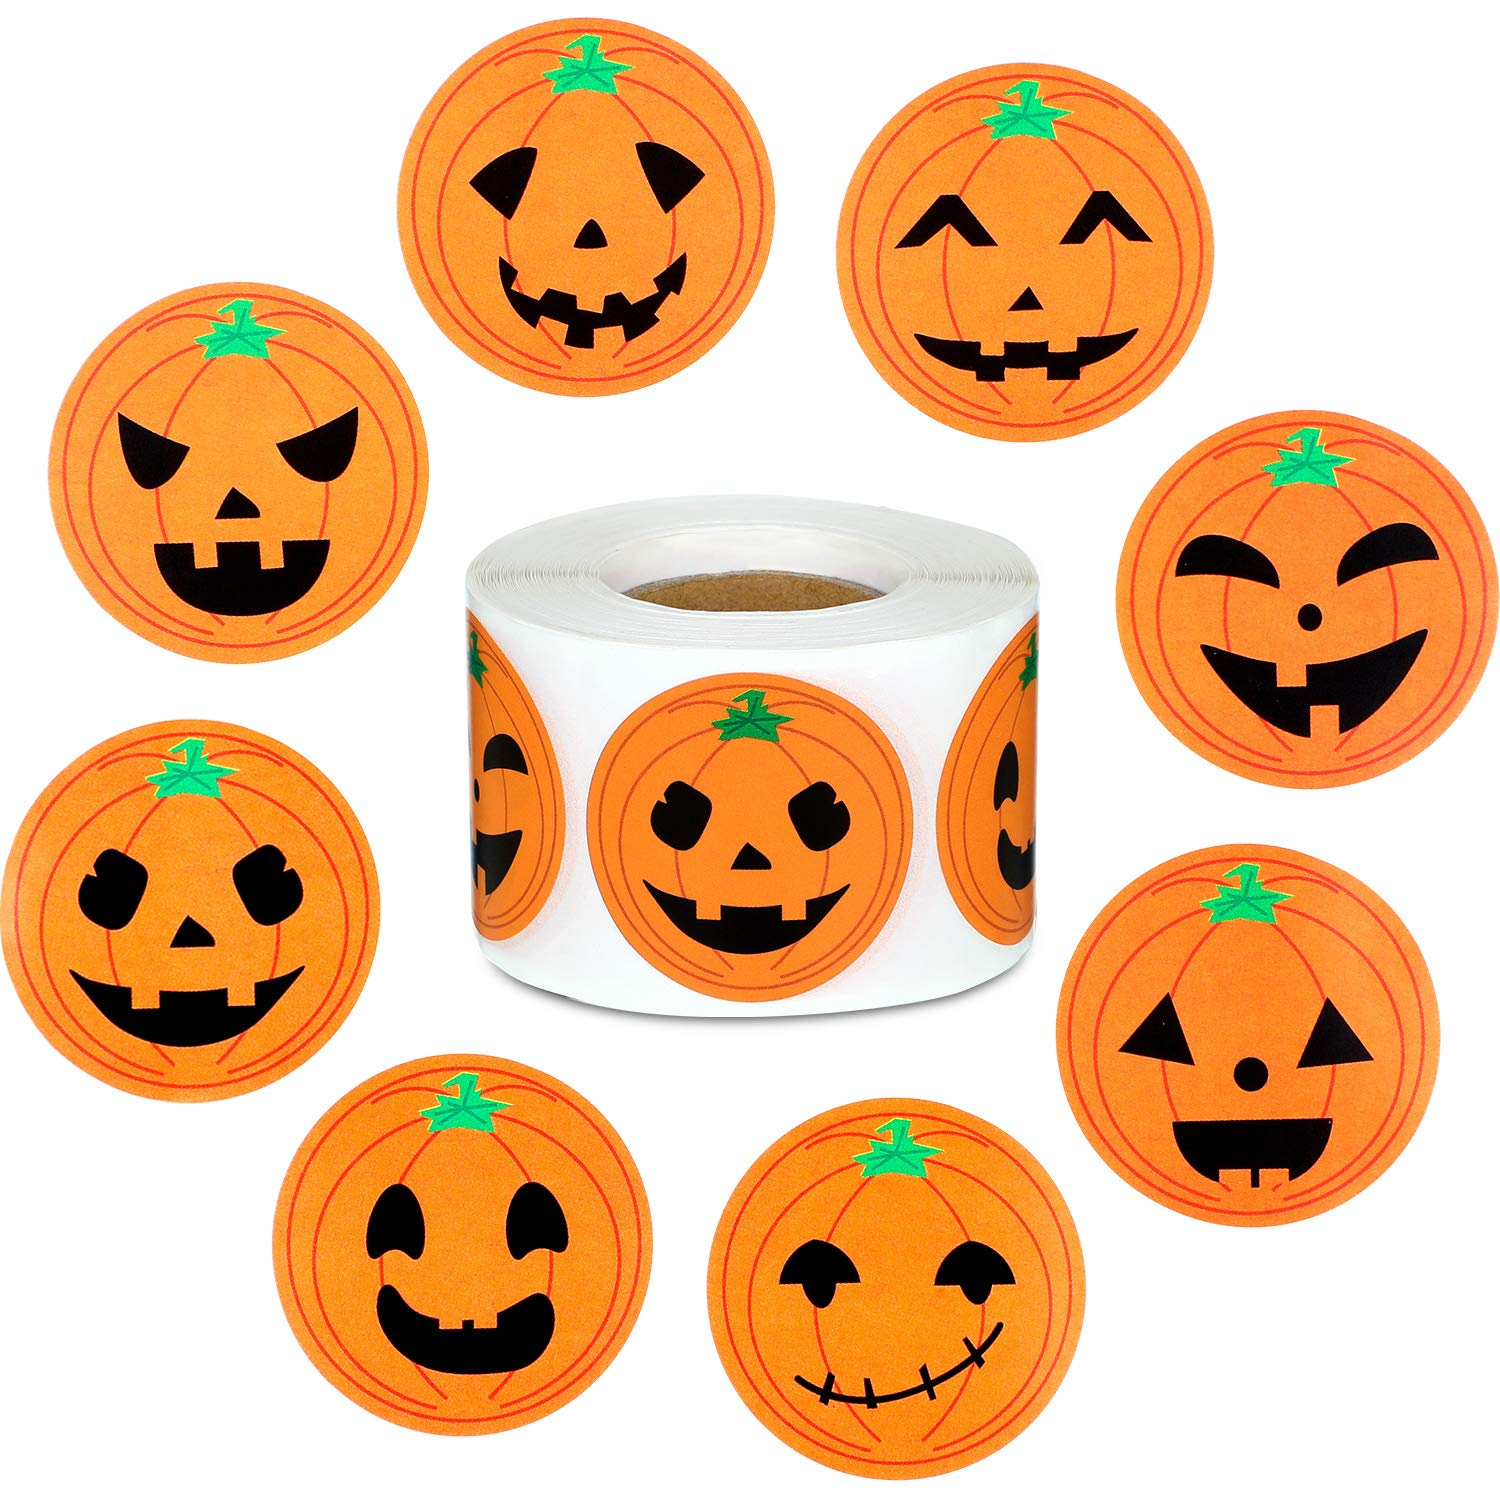 Outus 27 Pieces Halloween Pumpkin Stickers Pumpkin Craft Stickers Face Stickers for Halloween Party Decoration Props